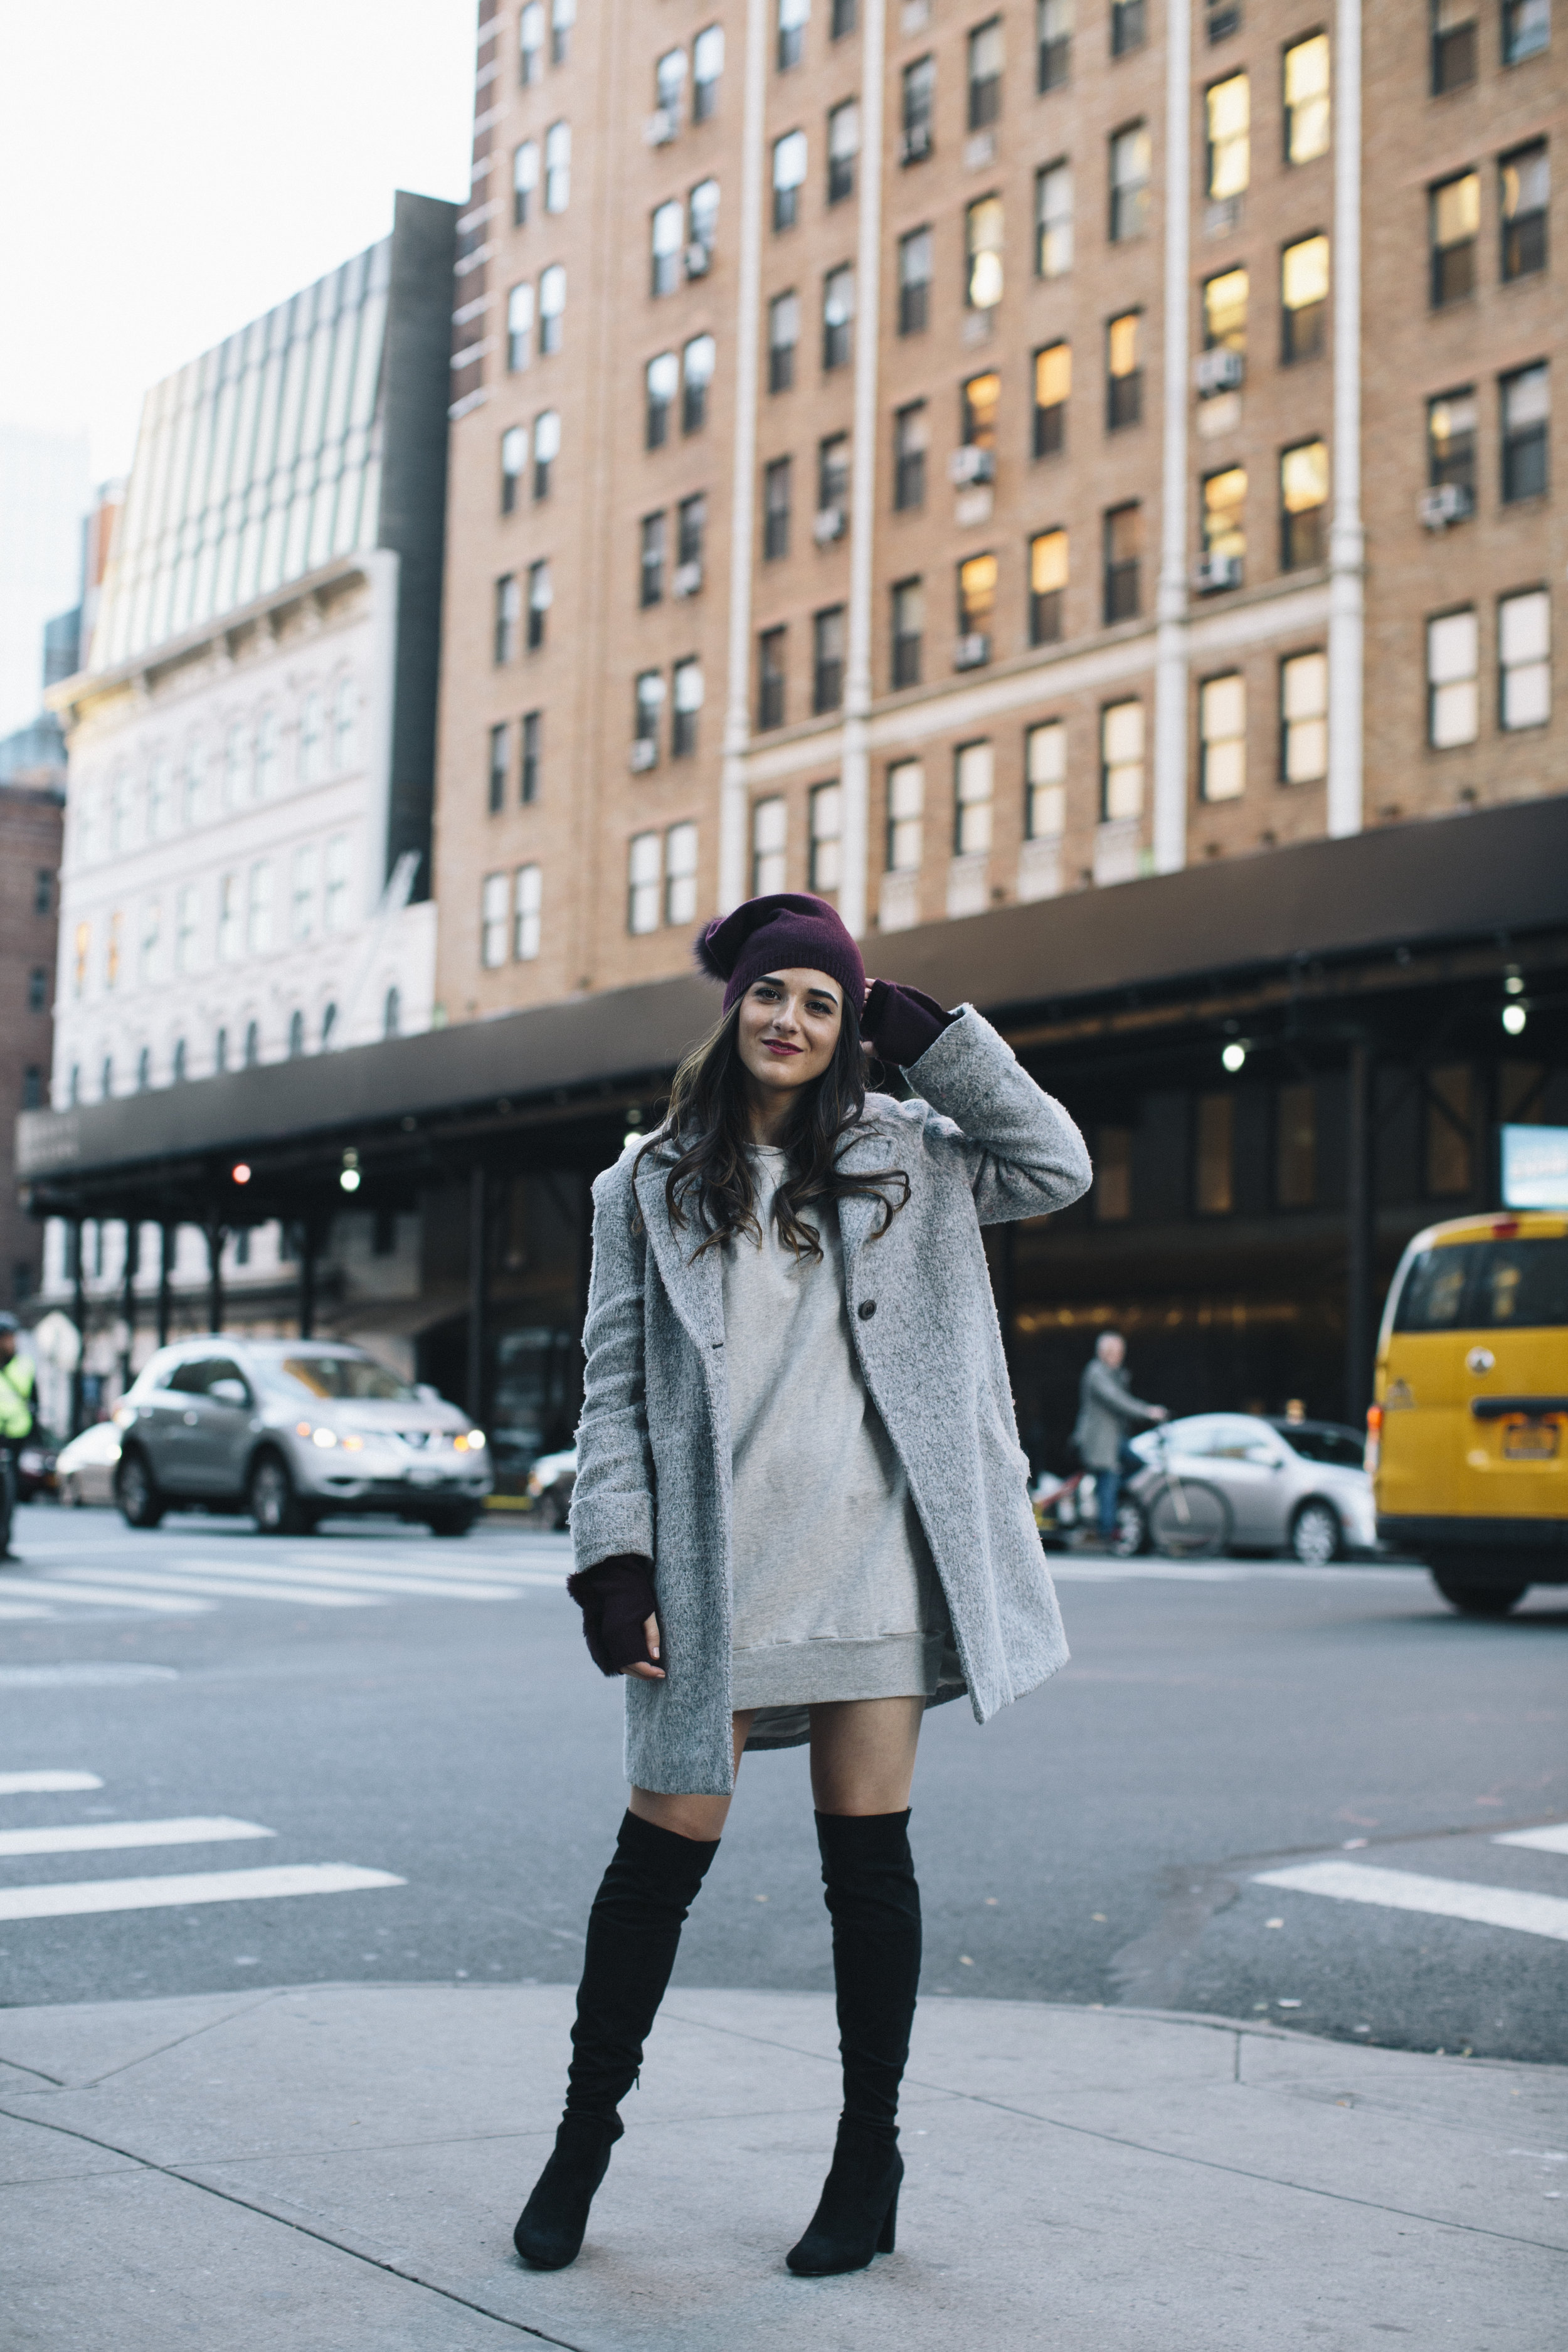 Cashmere Hat And Glove Set Piccolo New York Louboutins & Love Fashion Blog Esther Santer NYC Street Style Blogger Outfit OOTD Trendy Winter Wear Cold Weather Online Shopping Holiday Season Grey Coat Zara Sweatshirt Dress Girls OTK Black Boots Buy Cozy.jpg